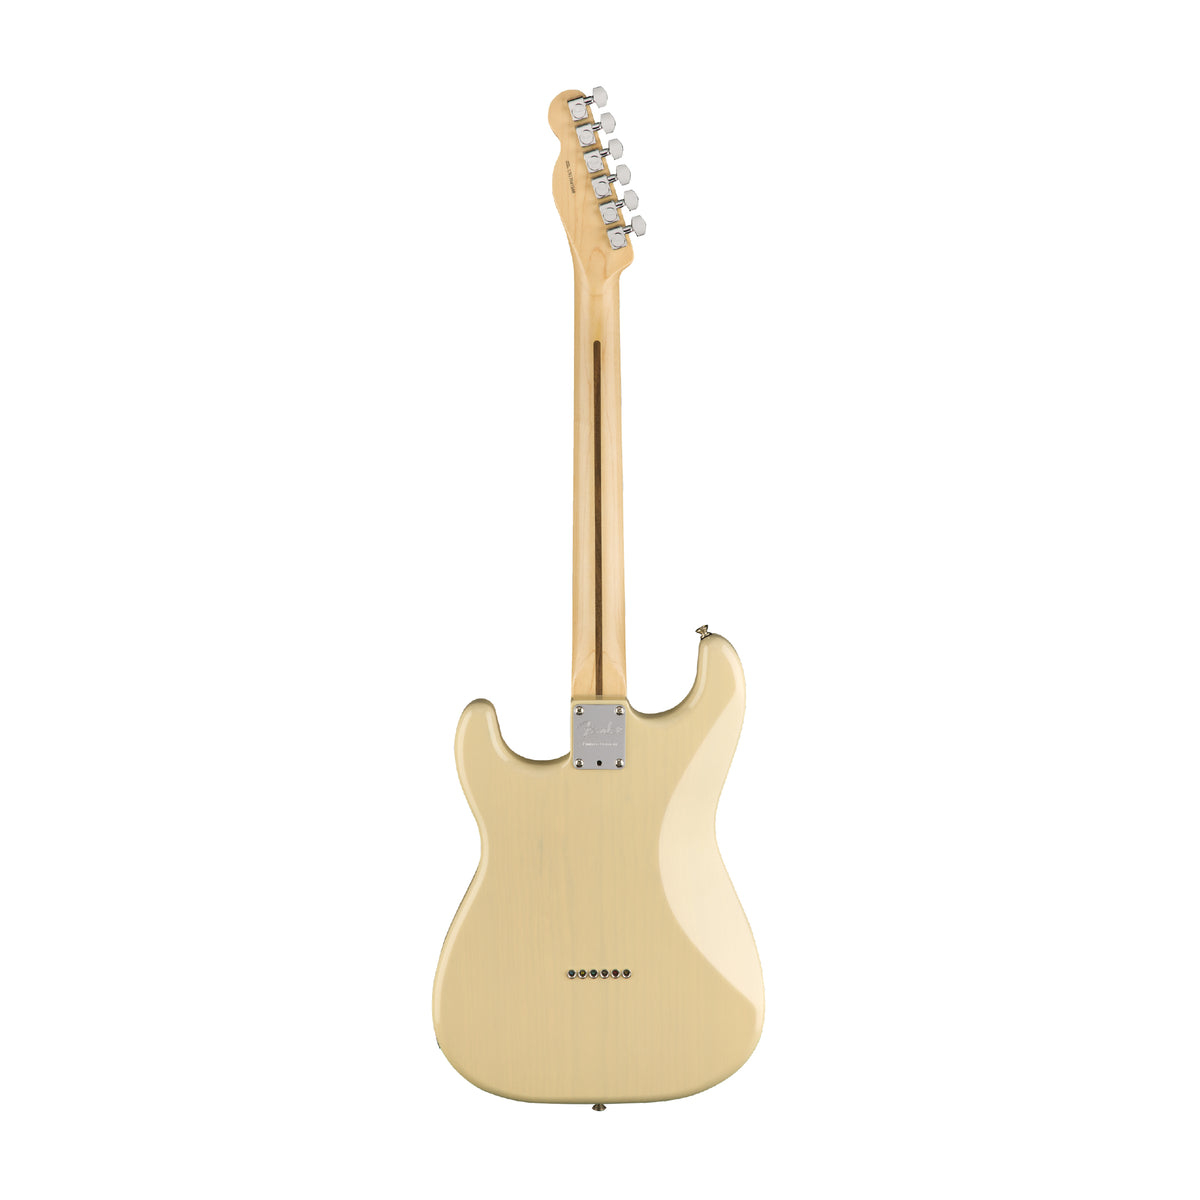 Fender Parallel Universe Whiteguard Strat - Vintage Blonde (September 2018) - Tarpley Music Company, Inc.